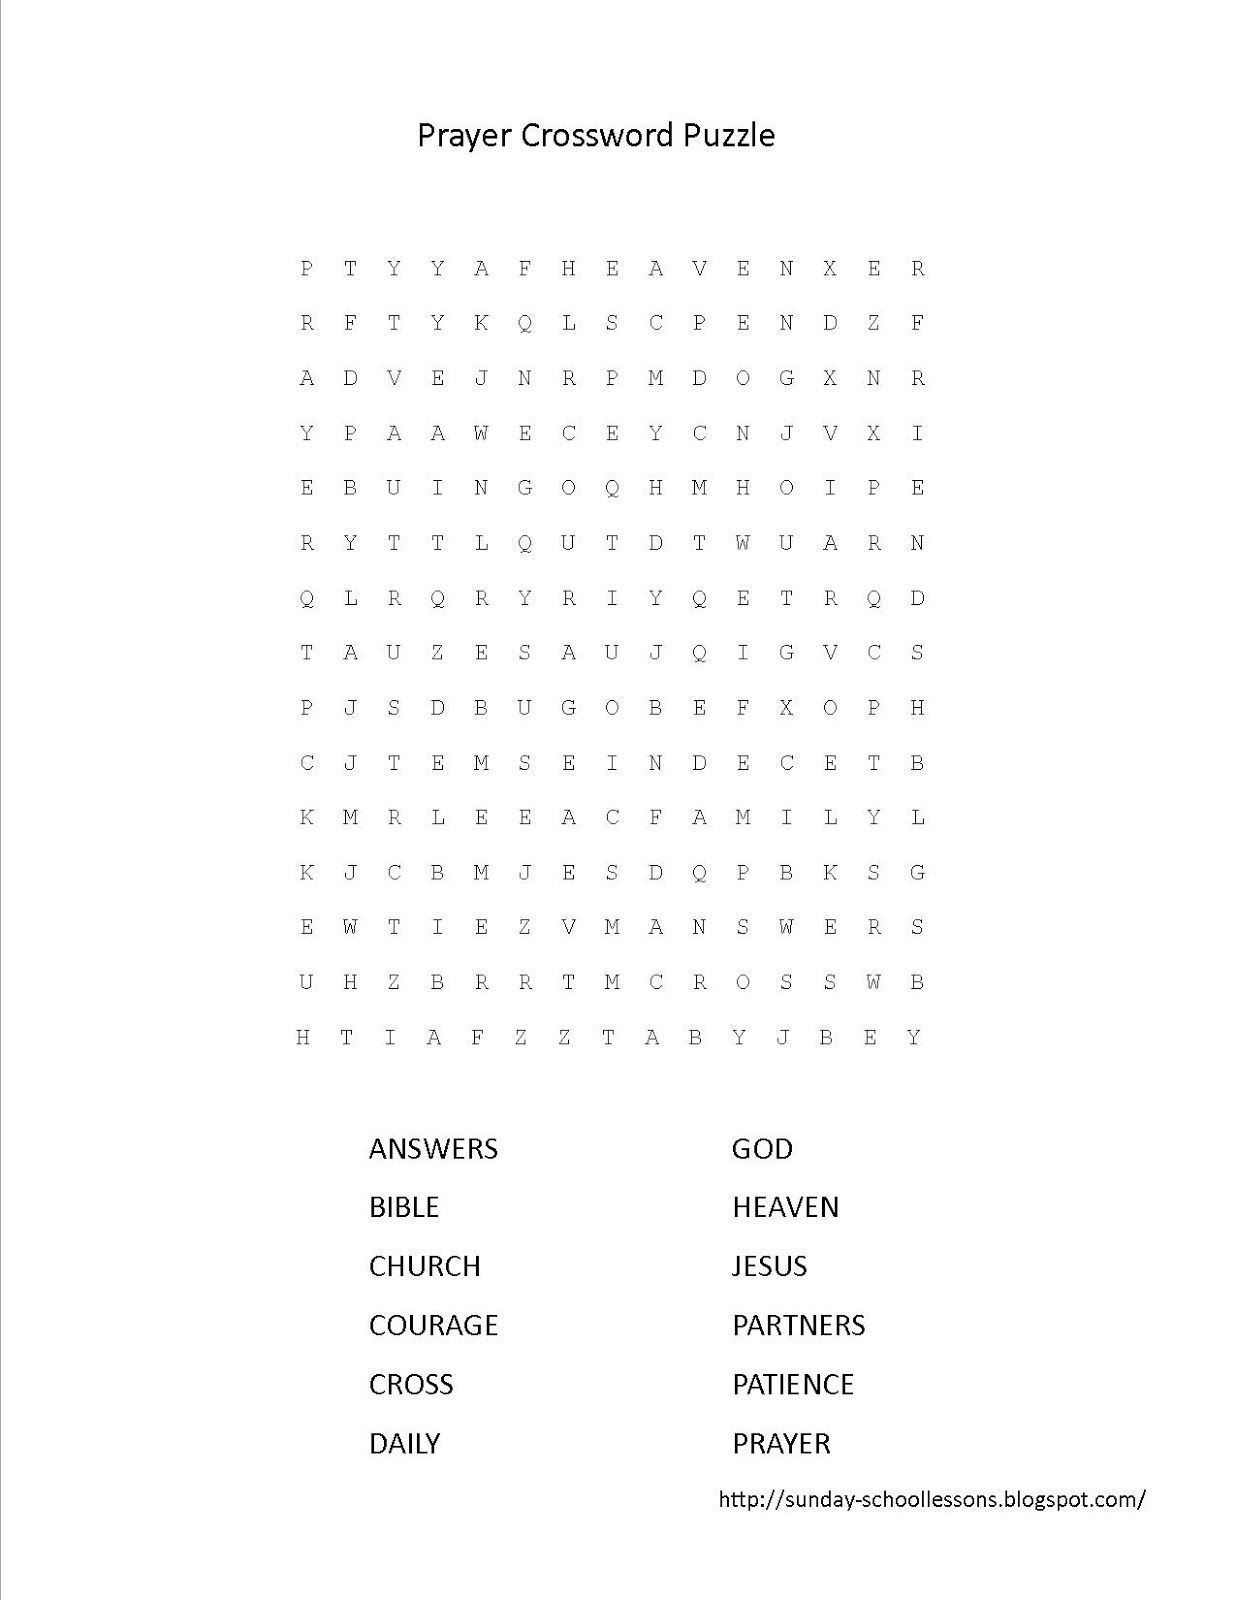 Prayer Crossword Puzzle With Images